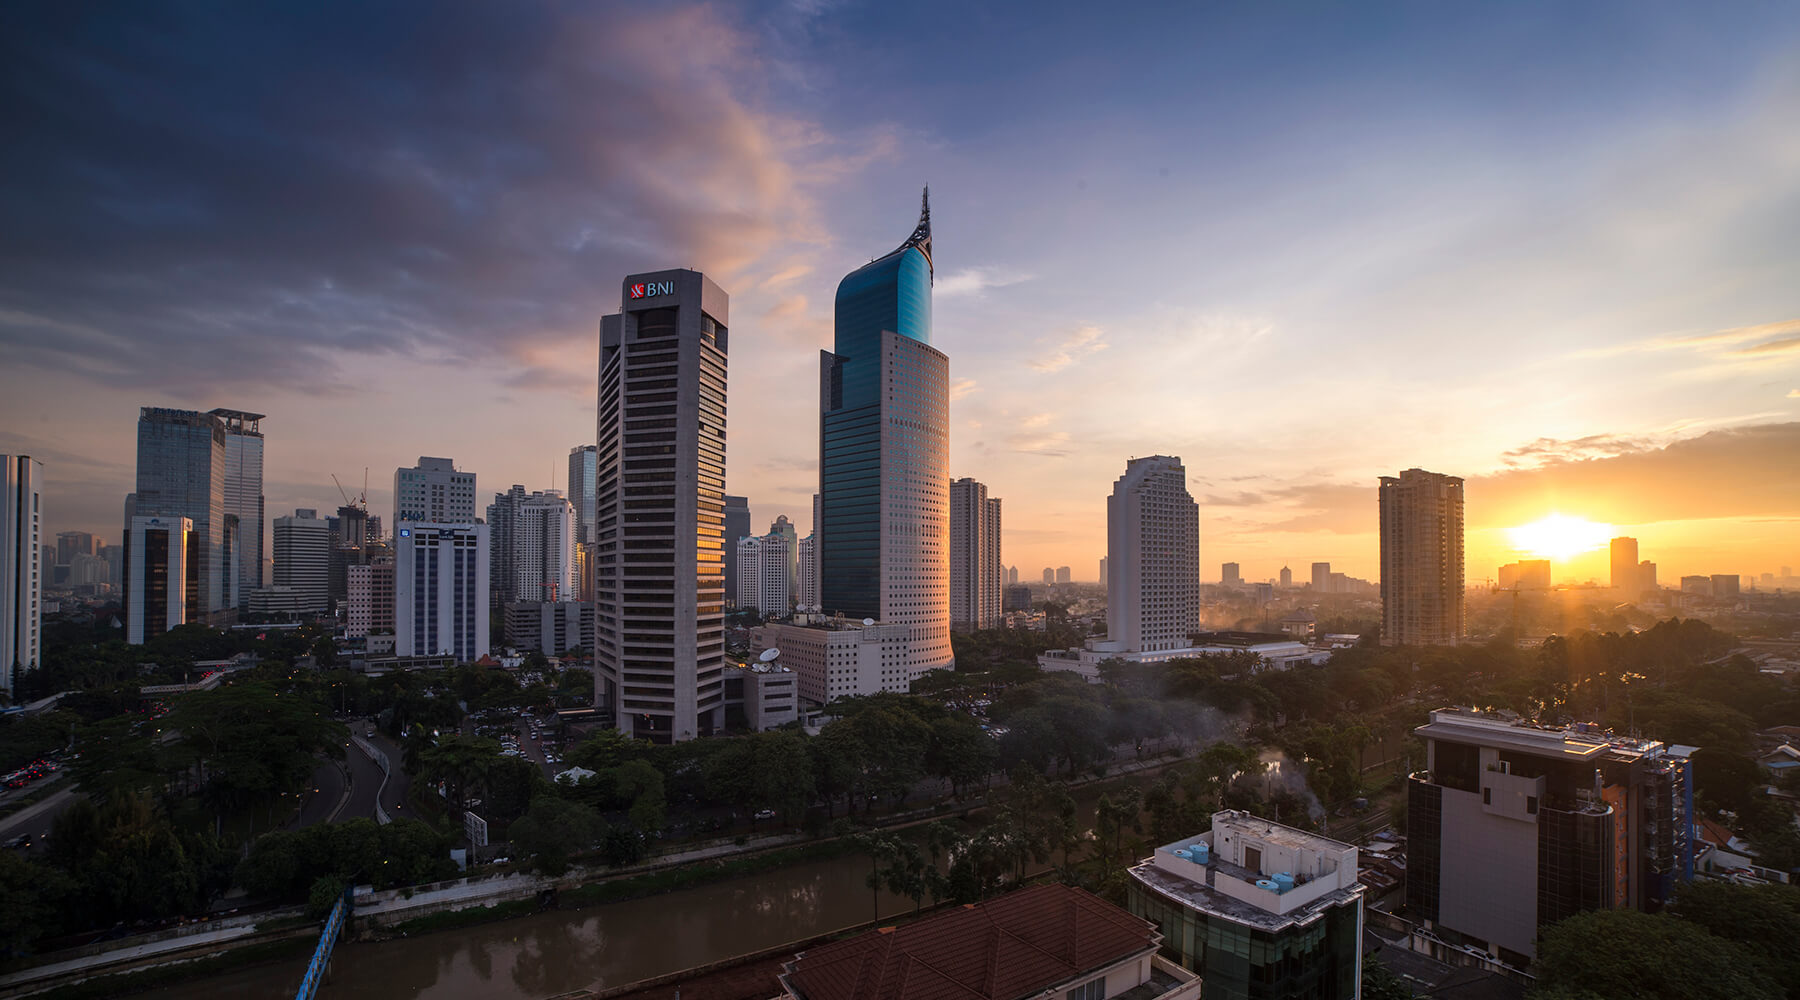 Jakarta wallpapers, Man Made, HQ Jakarta pictures   20K Wallpapers 20